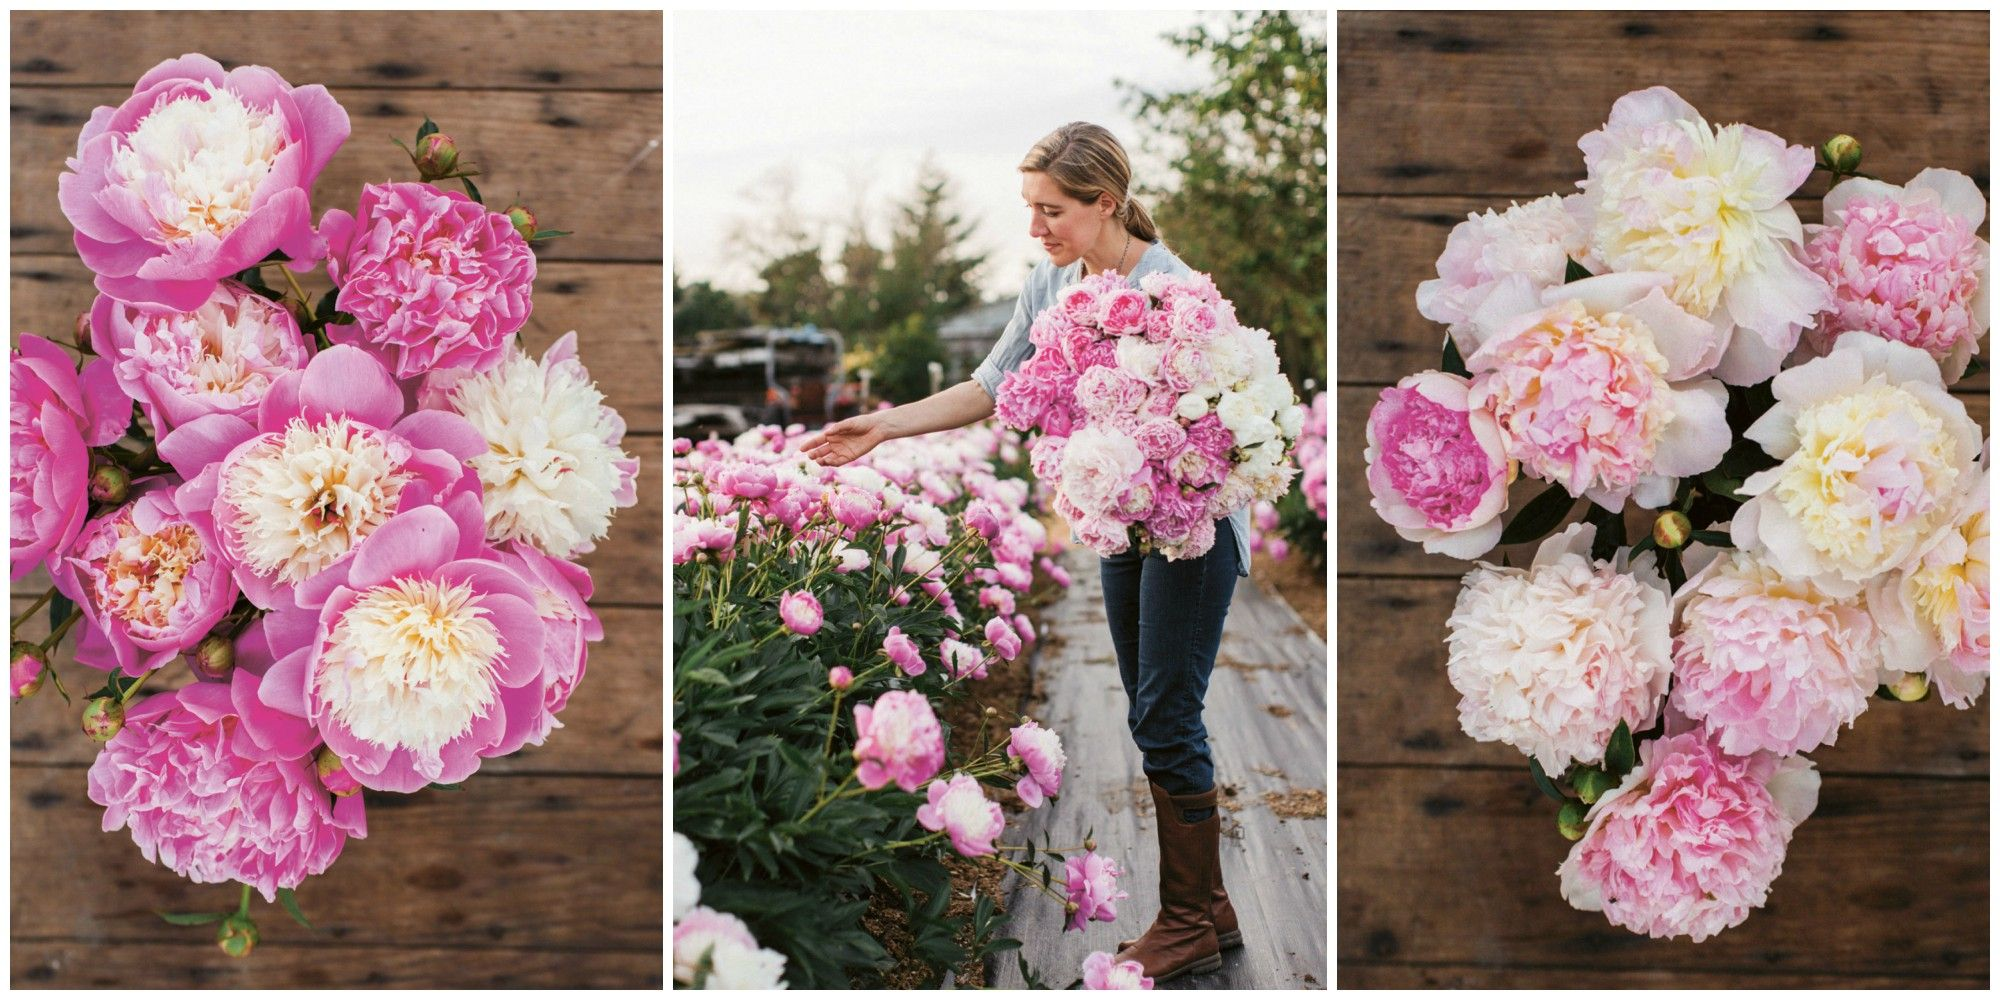 Pianese Flowers How To Grow Peonies How To Care For Peonies